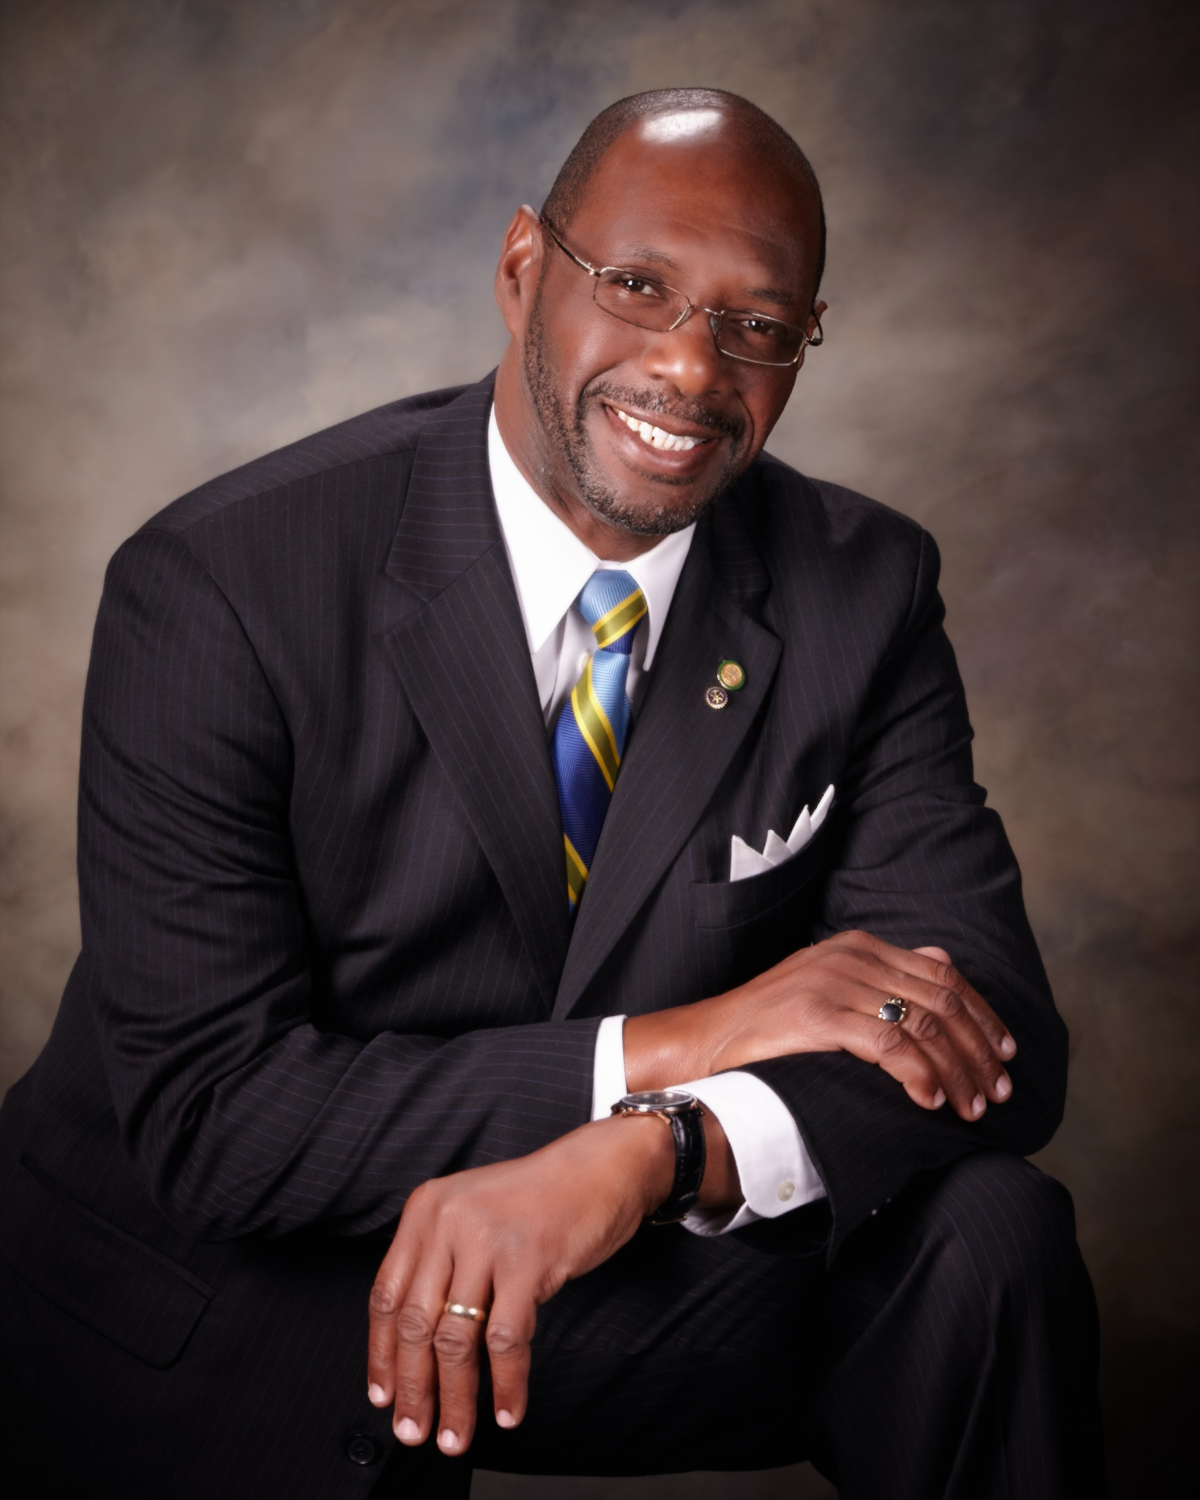 Councilman Michael S. Bell District 2